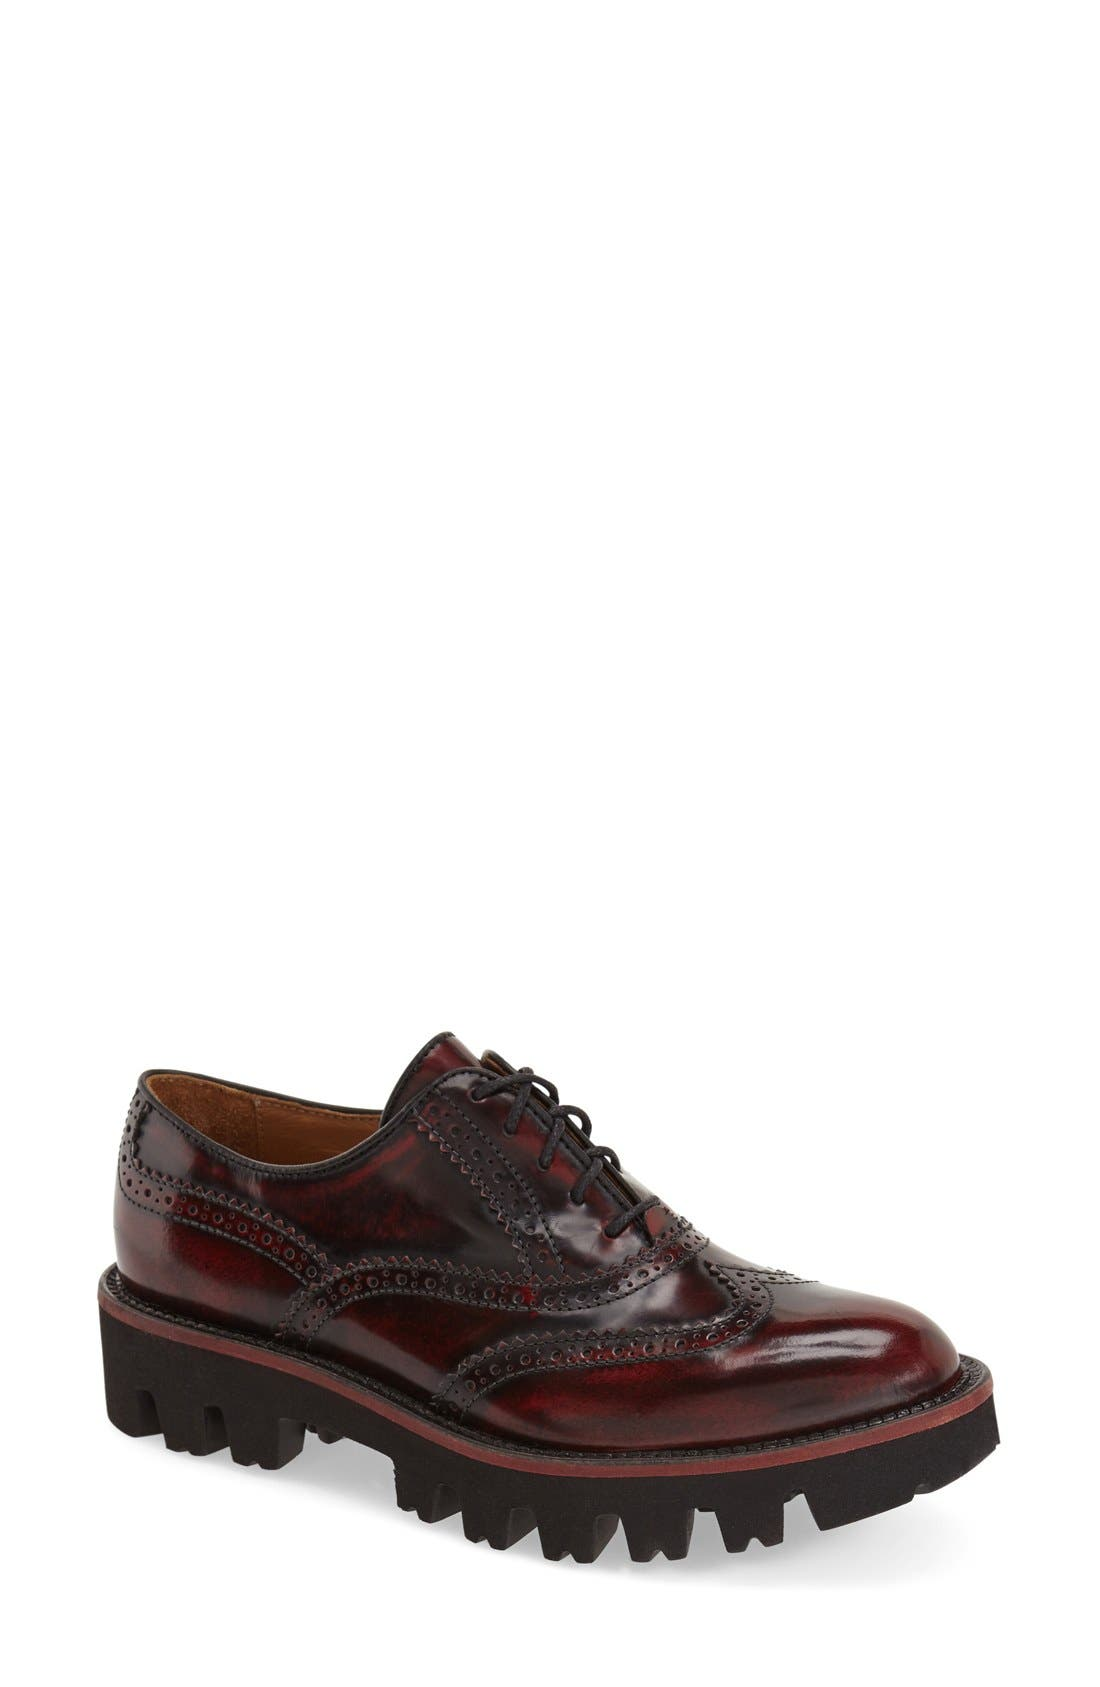 Alternate Image 1 Selected - Rokail Wingtip Oxford (Women)